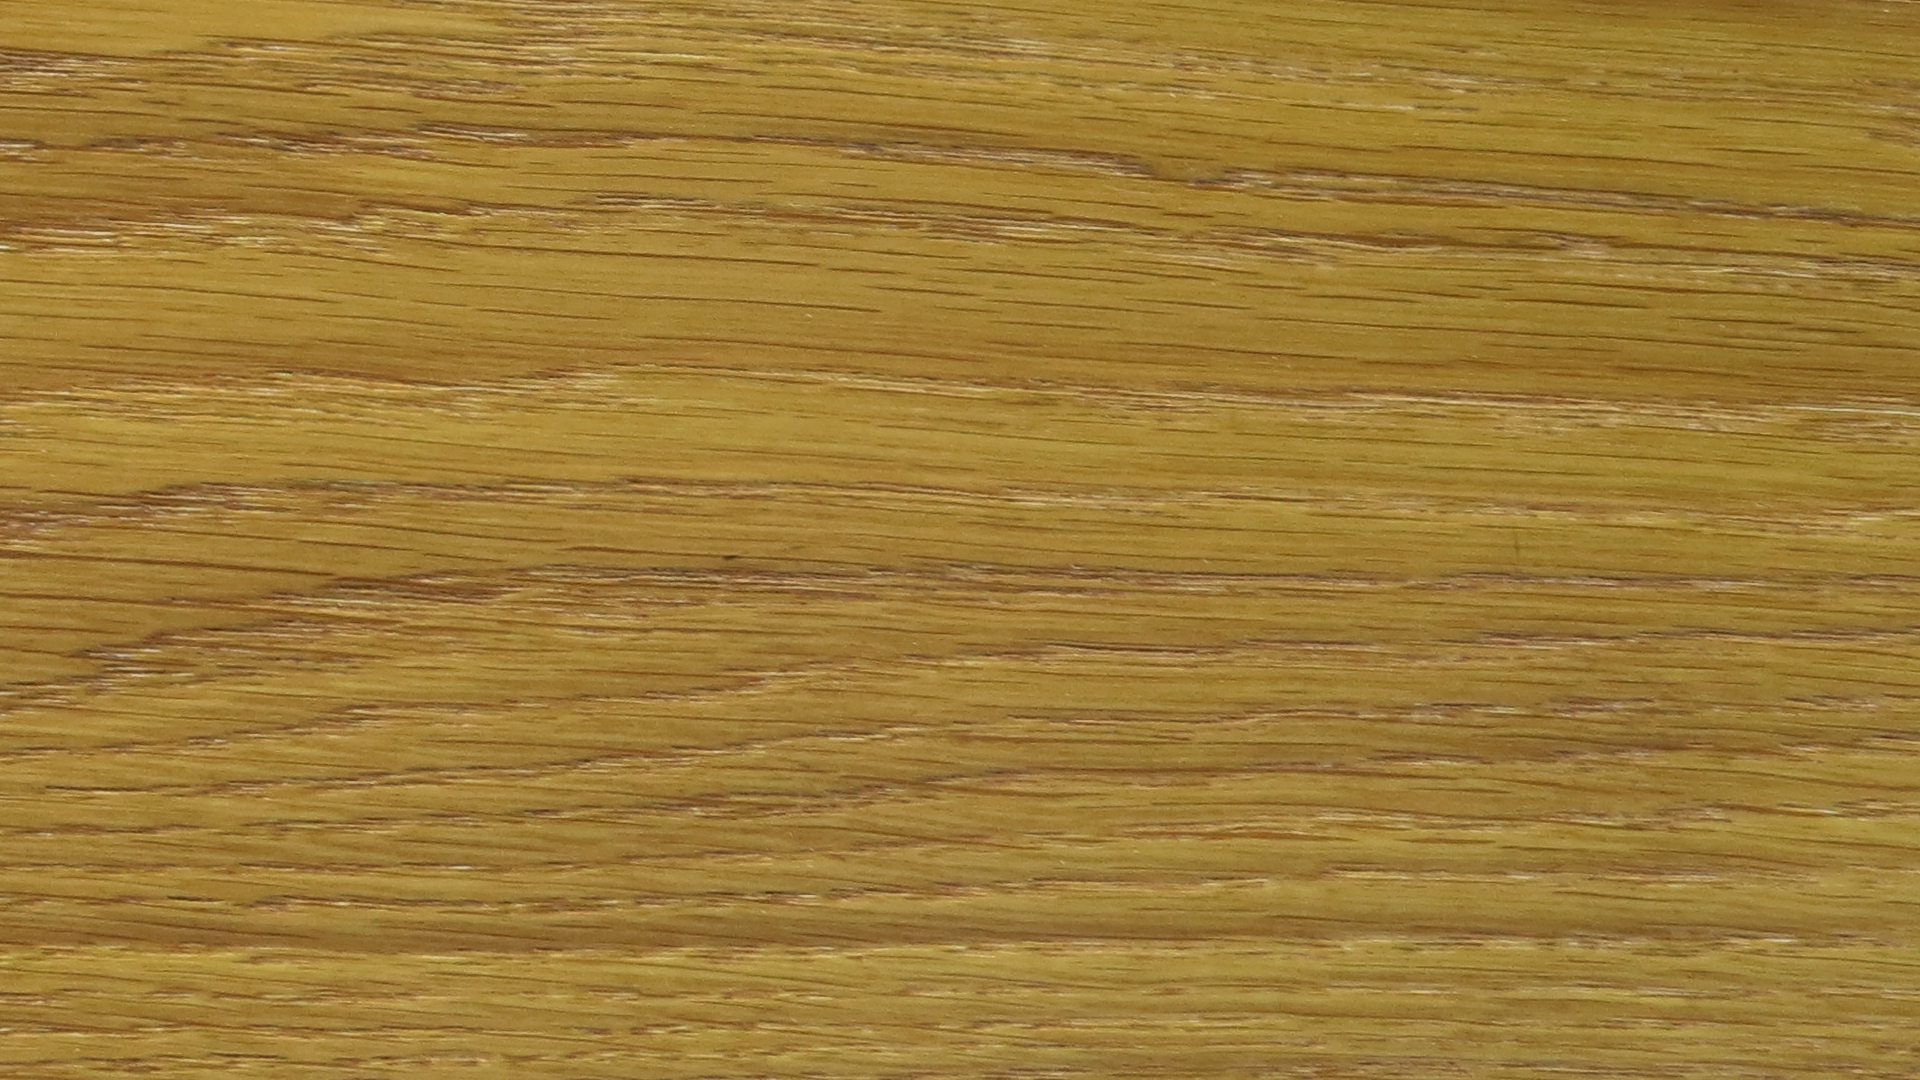 colorwood 27_57b7372d33c4d